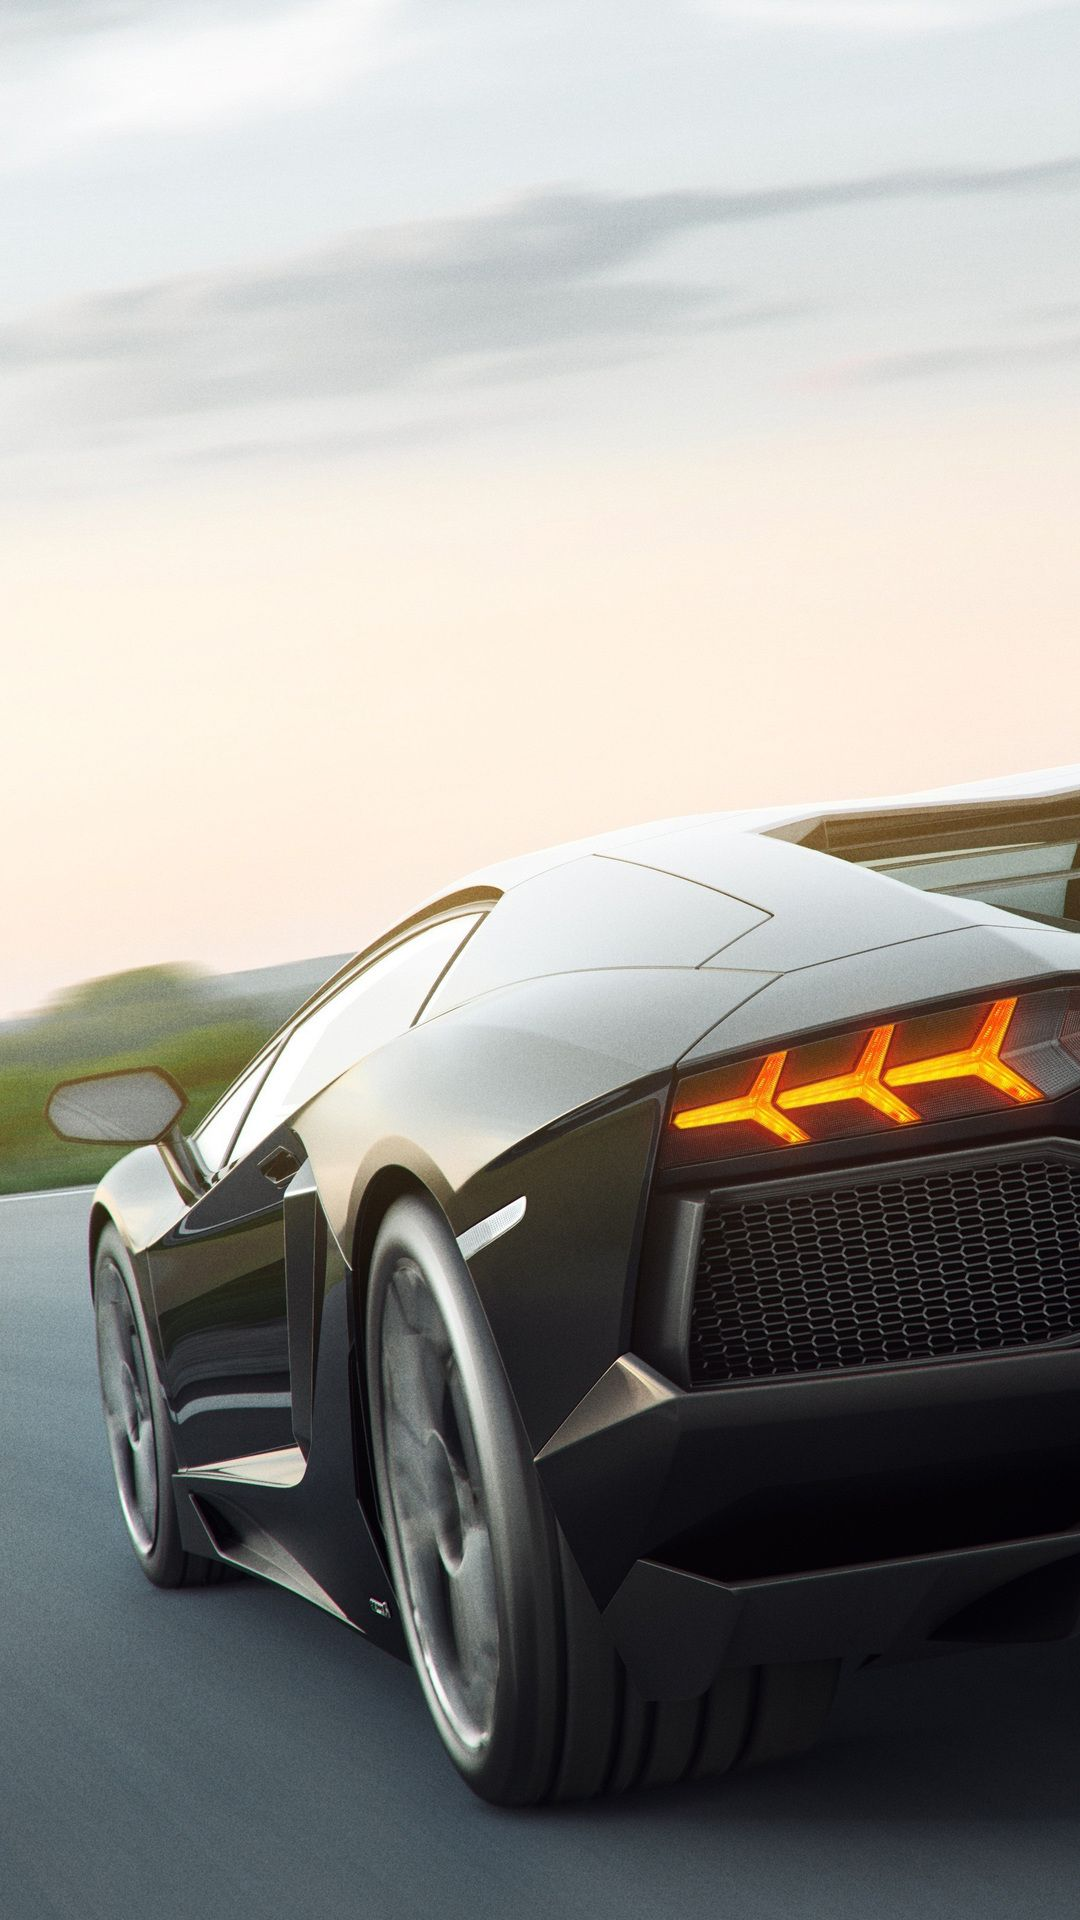 Cars Black Lamborghini Wallpapers Hd 4k Background For Android Android Wallpaper Cars Black Car Wallpaper Lamborghini Wallpaper Iphone